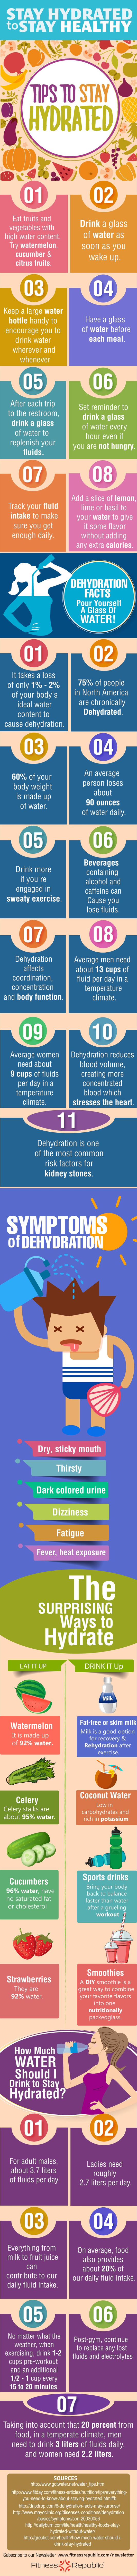 Stay Hydrated to Stay Healthy | Fitness Republic #Wellness